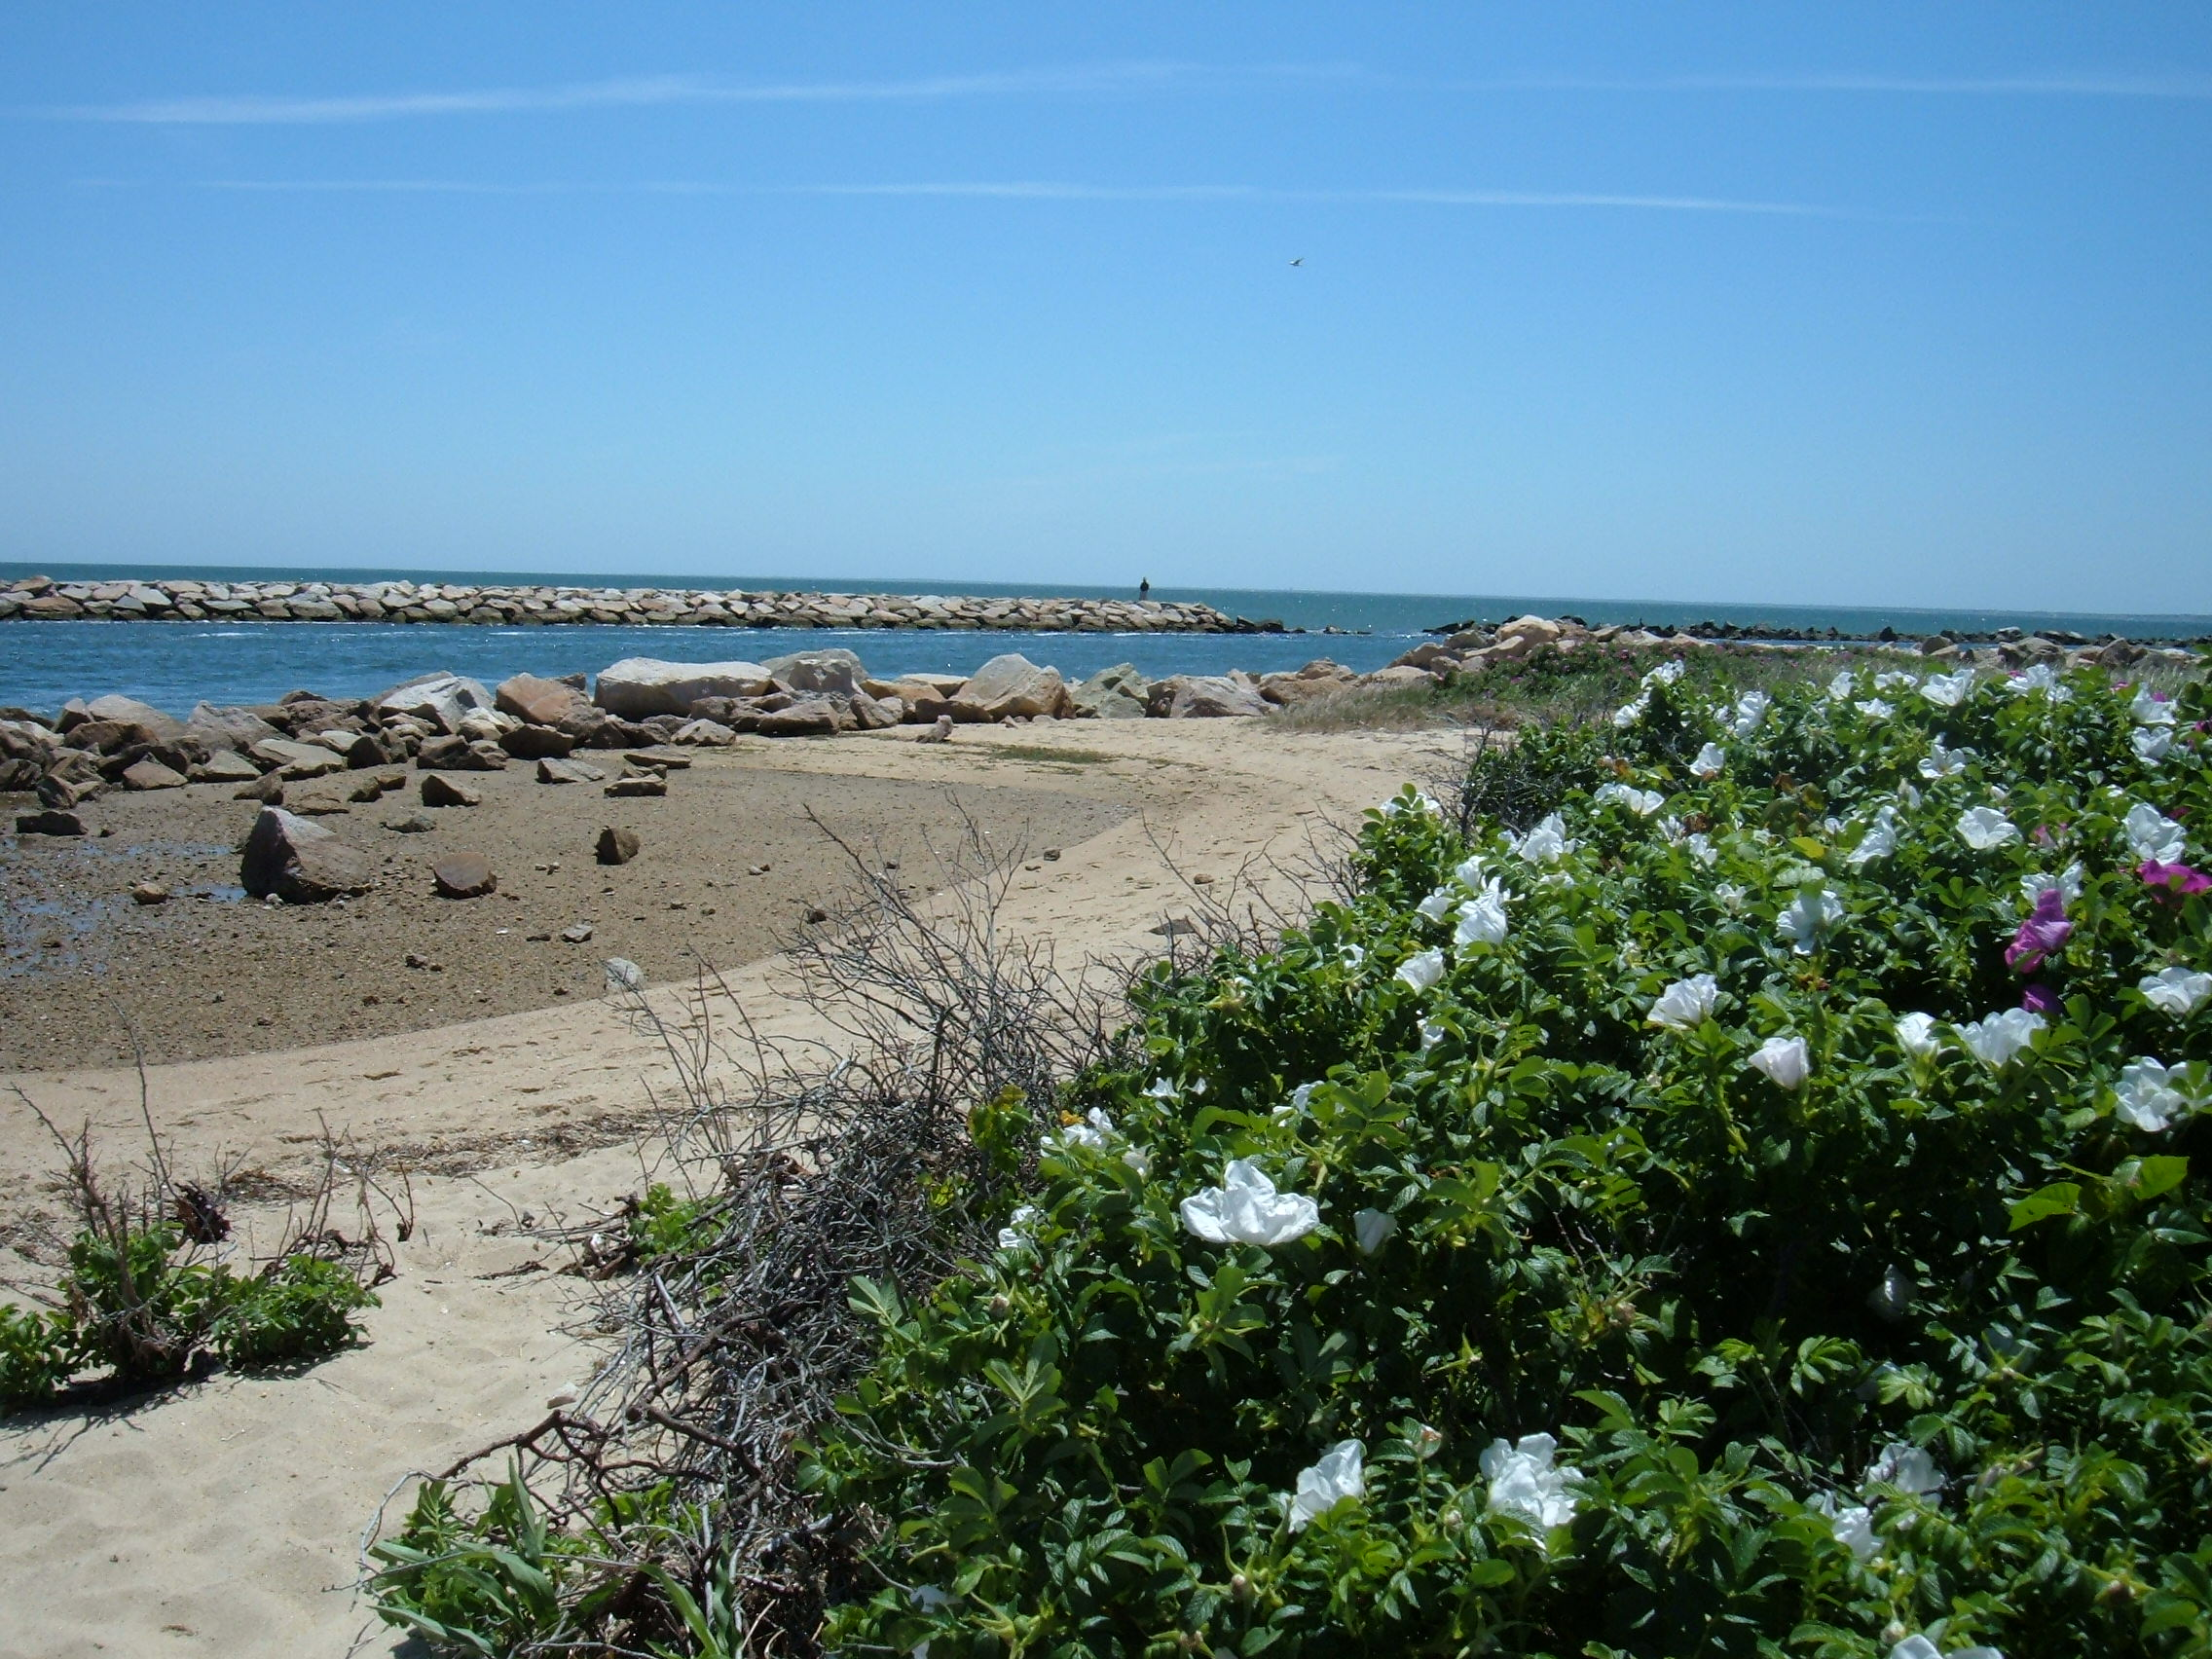 Camping Sites Near The Beach Open In Sept